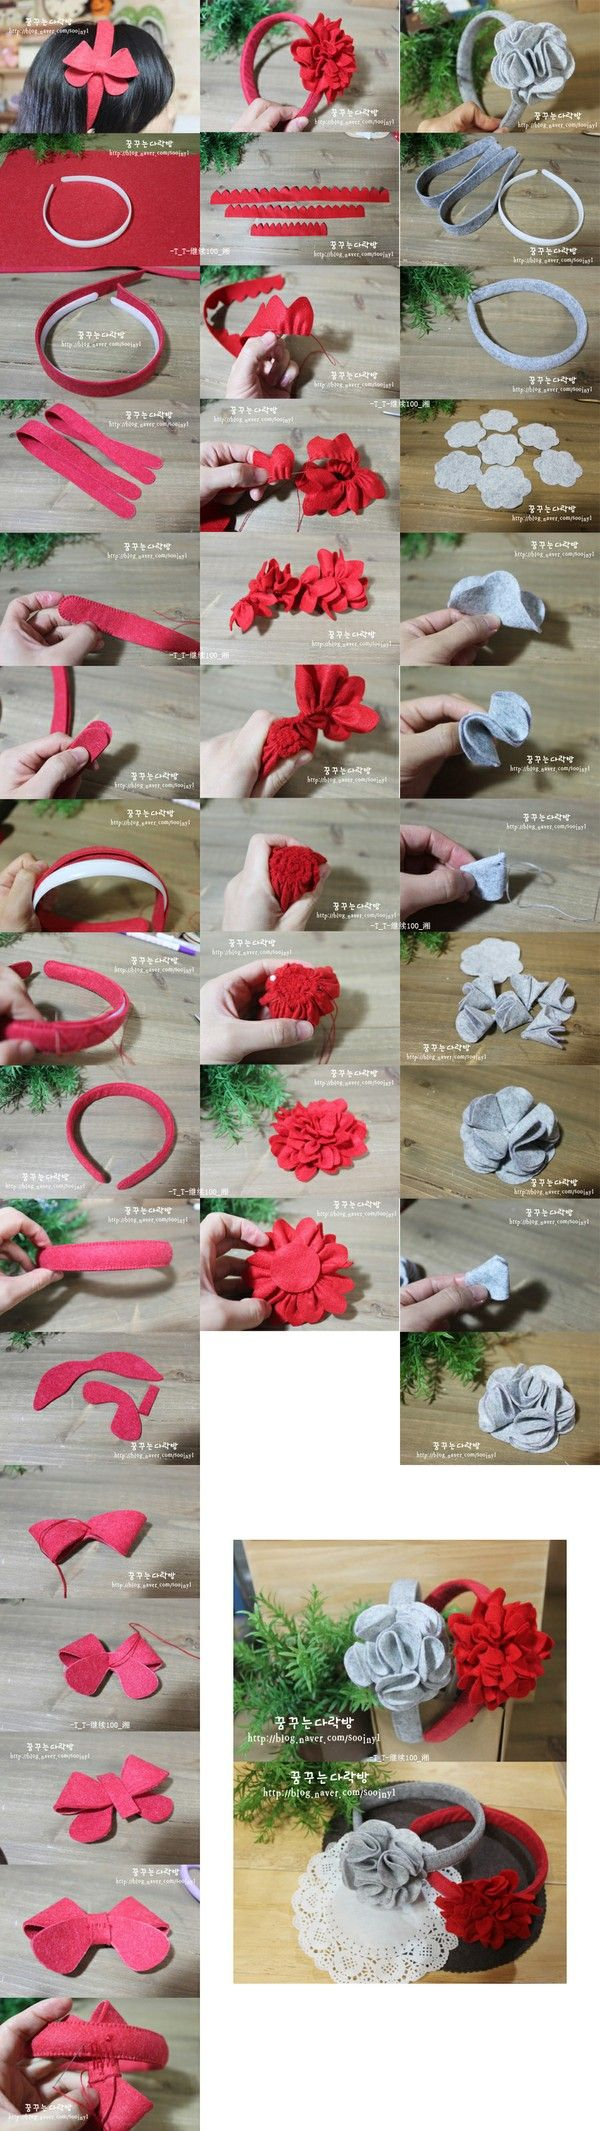 Not DIY weaving the various magical effect models hair bands (the flowers can be made the activities · not necessarily fixed si · made of hair bands can also be made Tousheng oh)